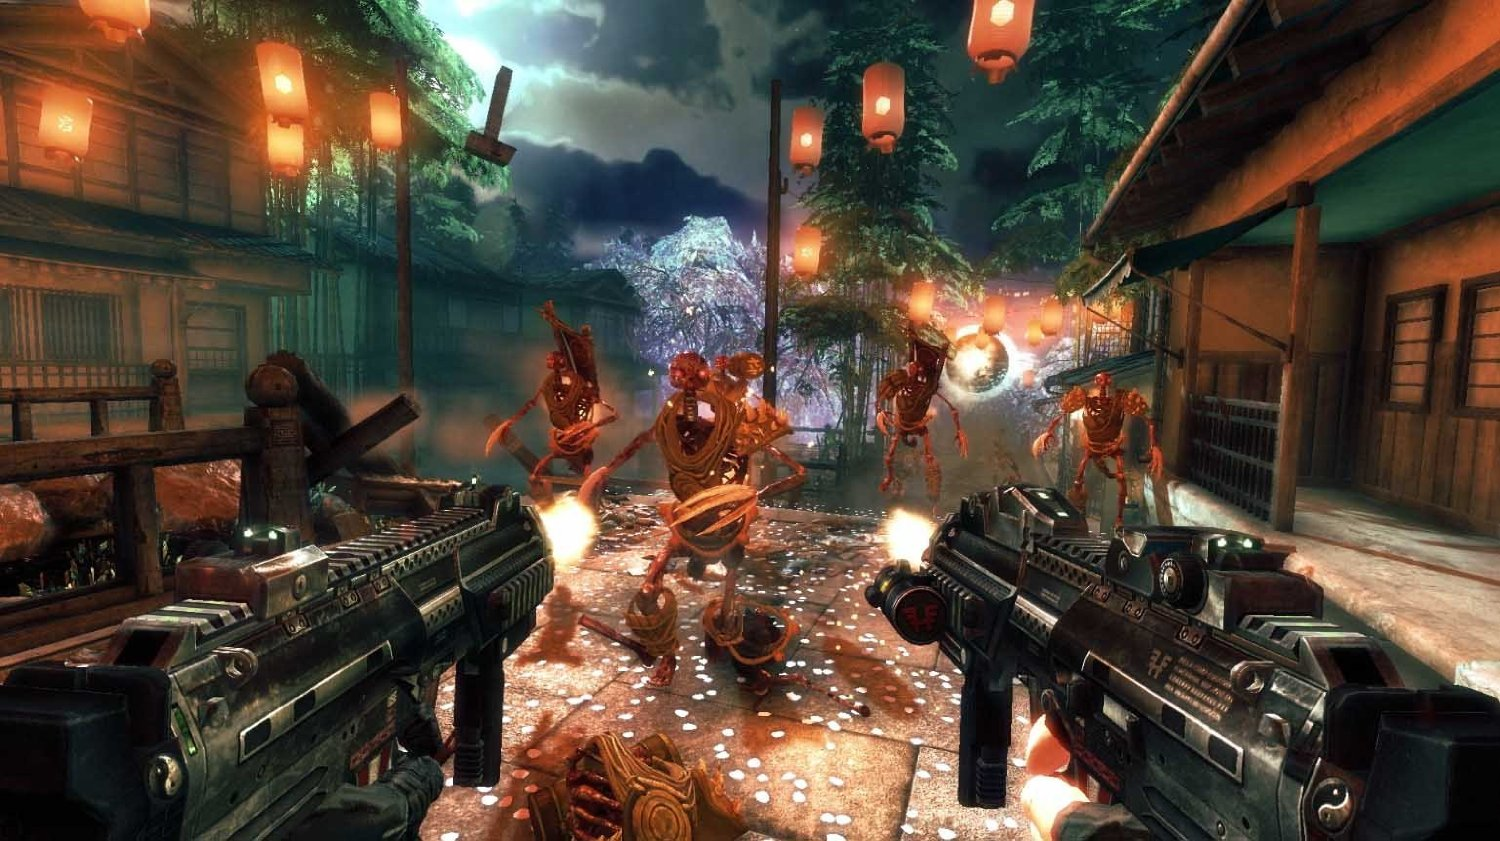 Shadow Warrior spune povestwea non-conventionala a corporatiei shogun Zilla